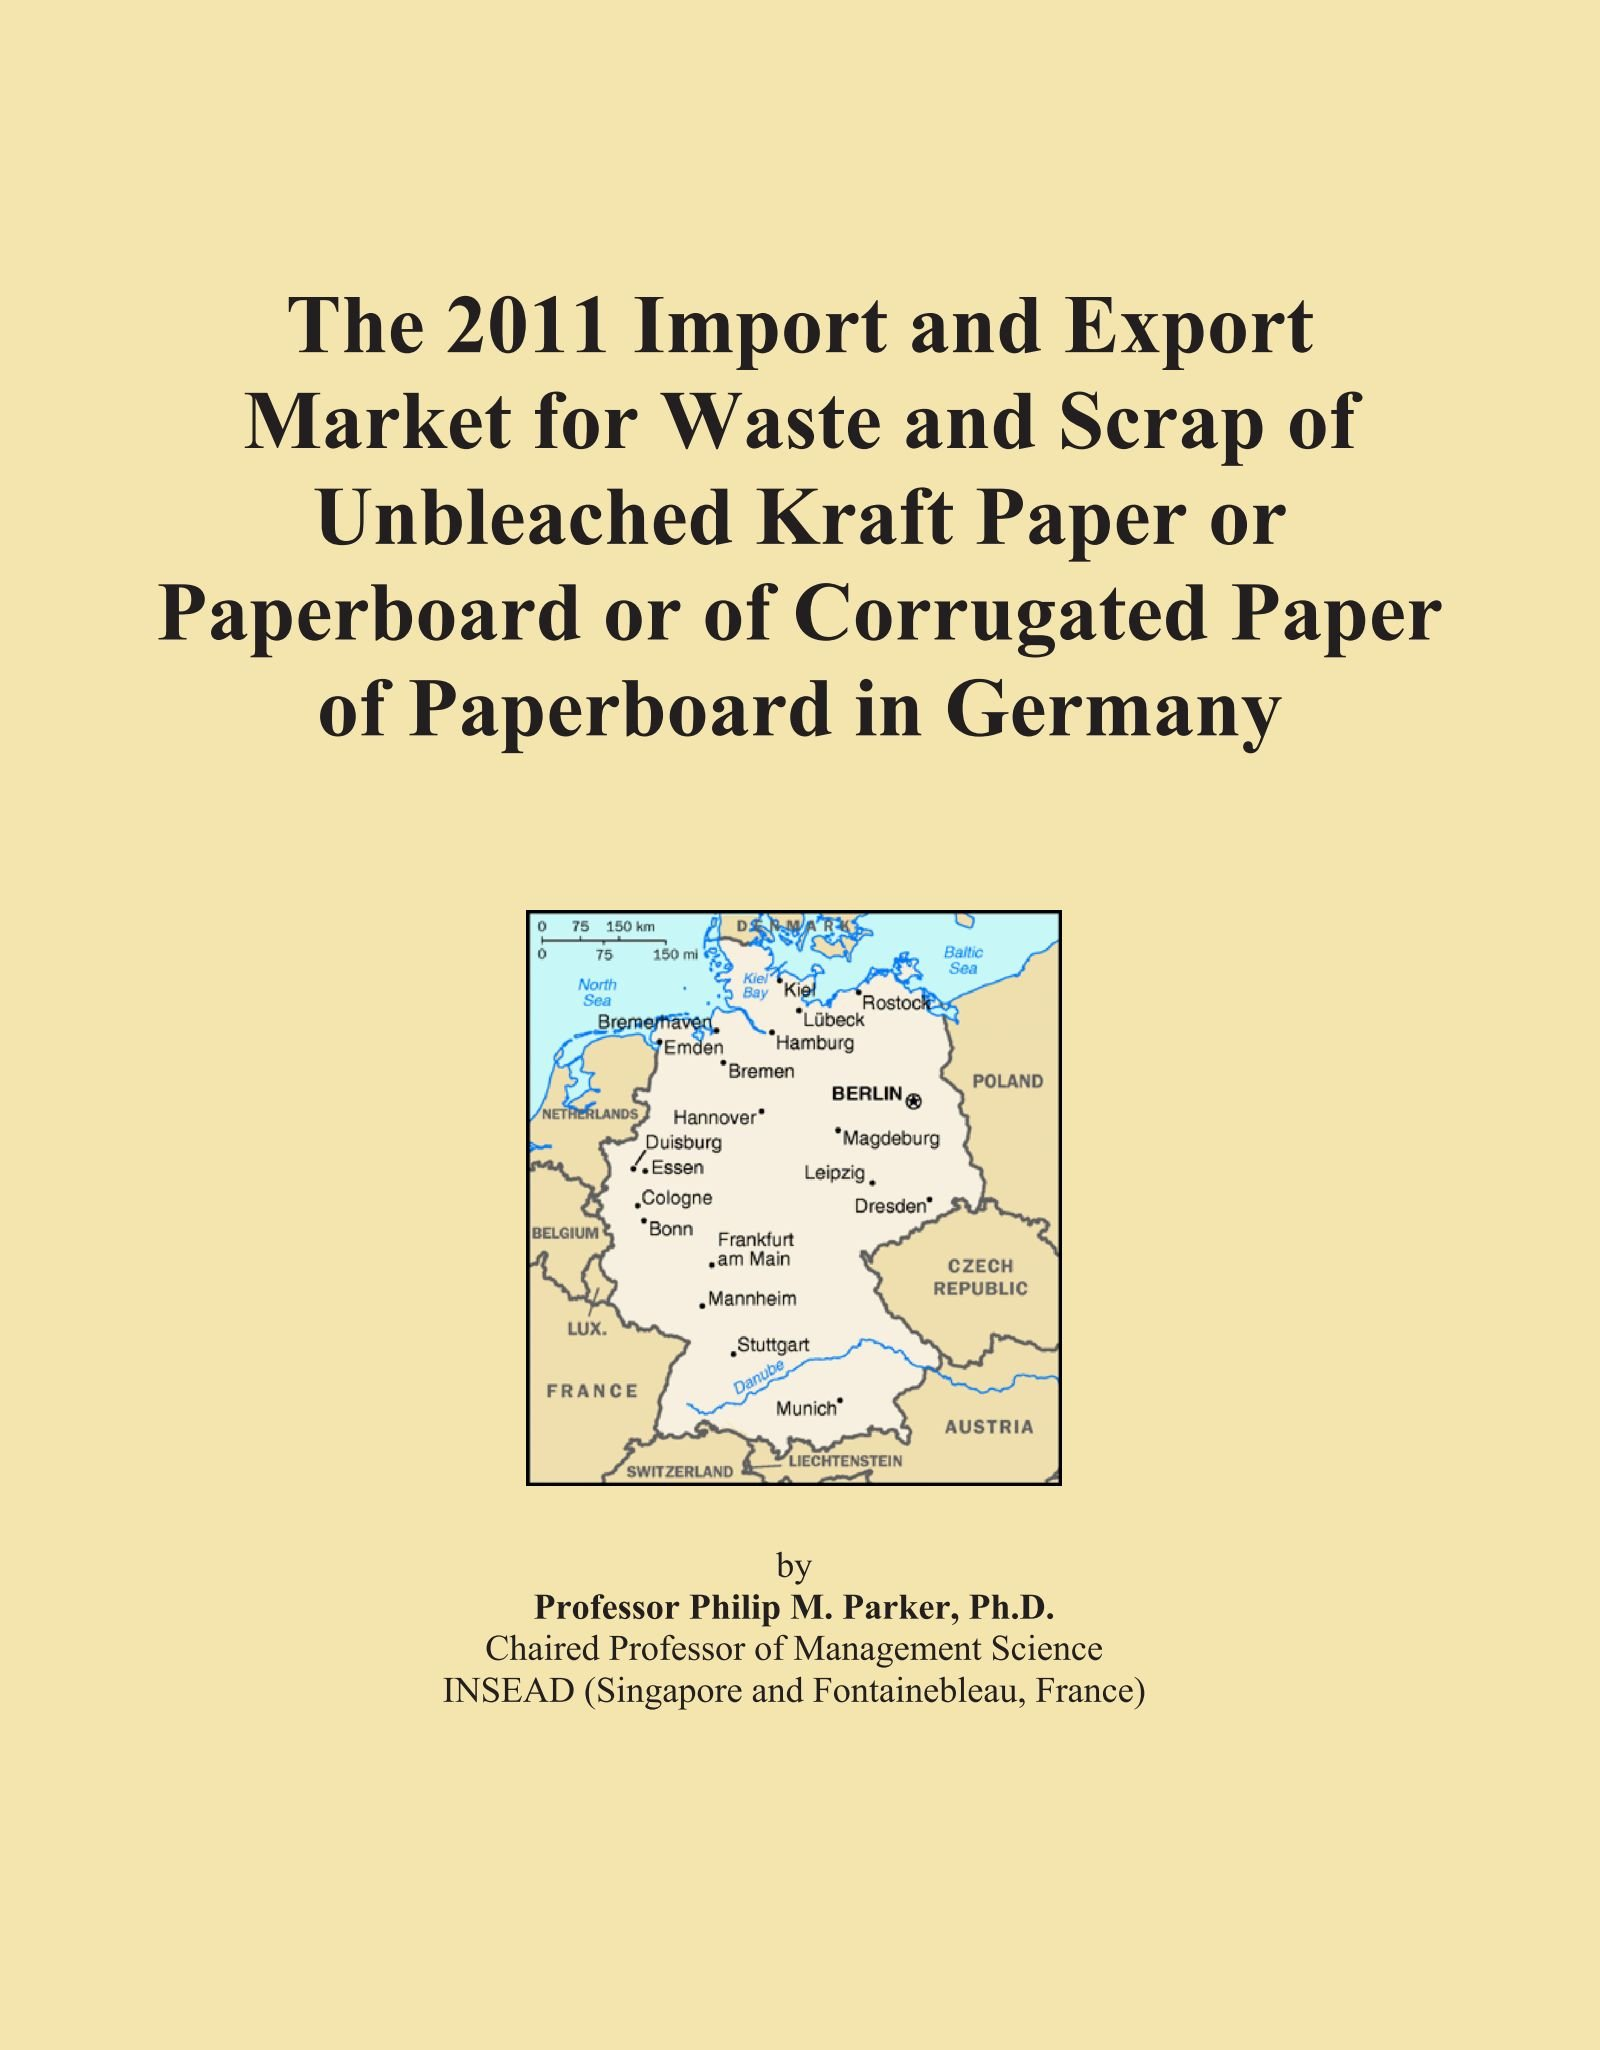 Download The 2011 Import and Export Market for Waste and Scrap of Unbleached Kraft Paper or Paperboard or of Corrugated Paper of Paperboard in Germany pdf